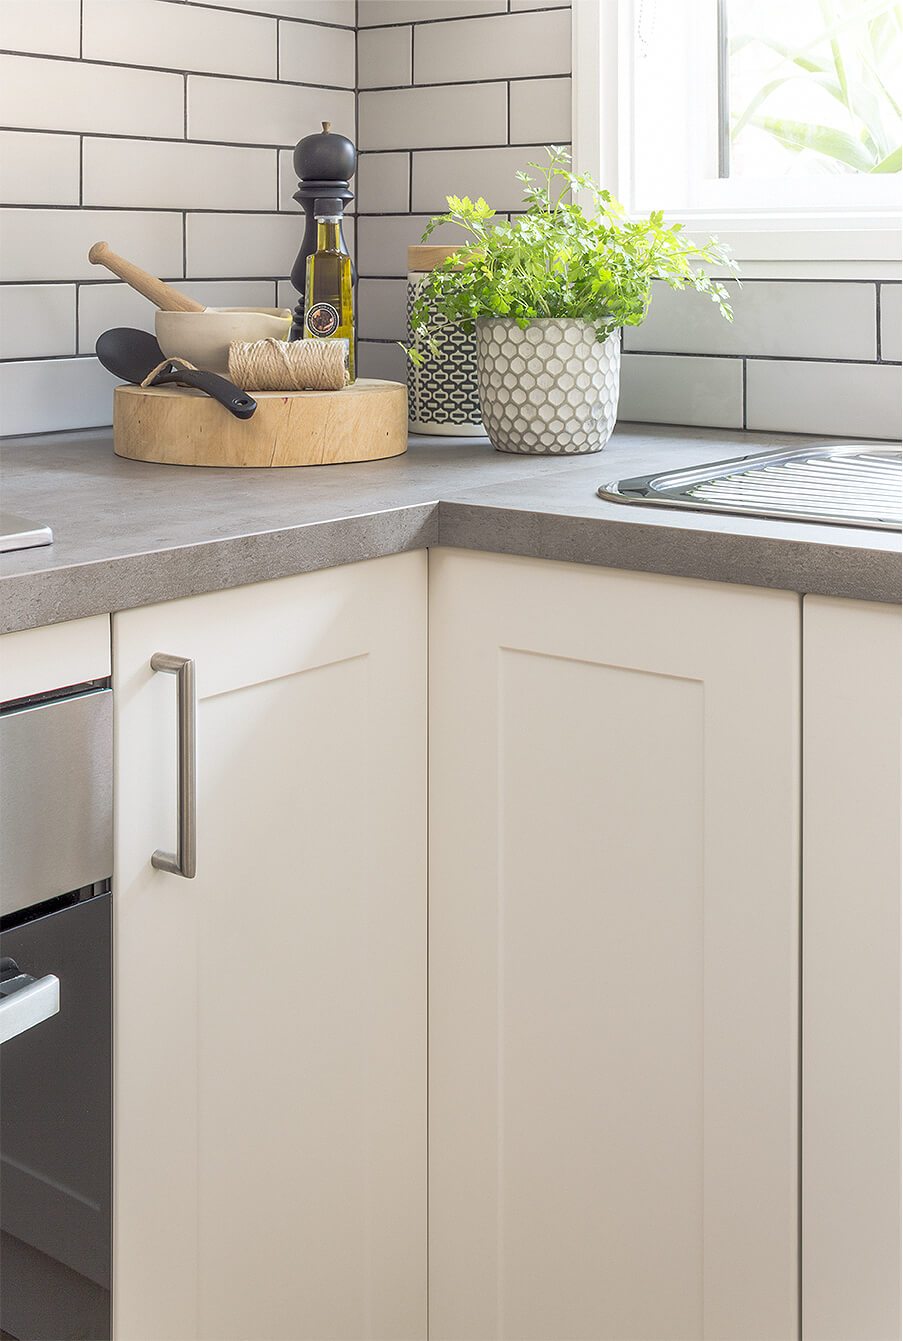 Home sweet home  kitchen inspiration and ideas  kaboodle